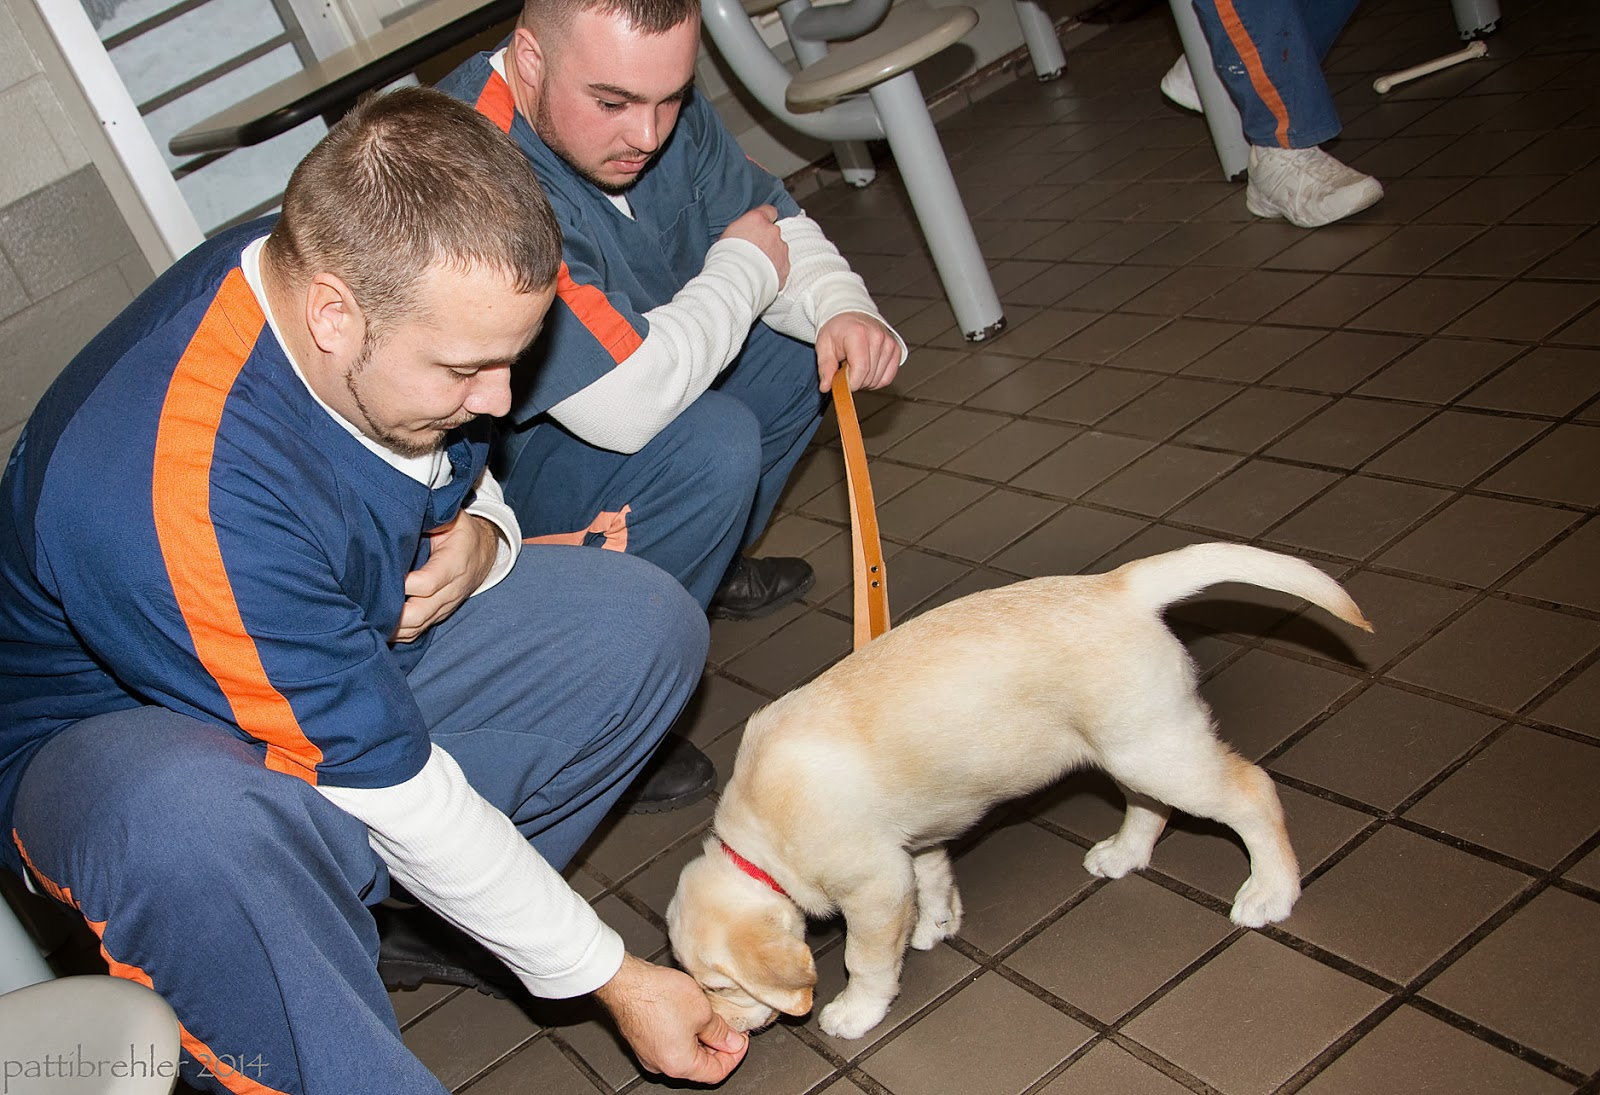 A small yellow Lab puppy is facing to the left, his head is sniffing a hand that is at the floor level. A young man with short dark hair is squatting to the left of the puppy, handing him a treat. He is dressed in the blue prison uniform with an oragan strip down his shoulder. Another young man, dressed the same, is squatting behind him. That man is holding a brown leather leash.